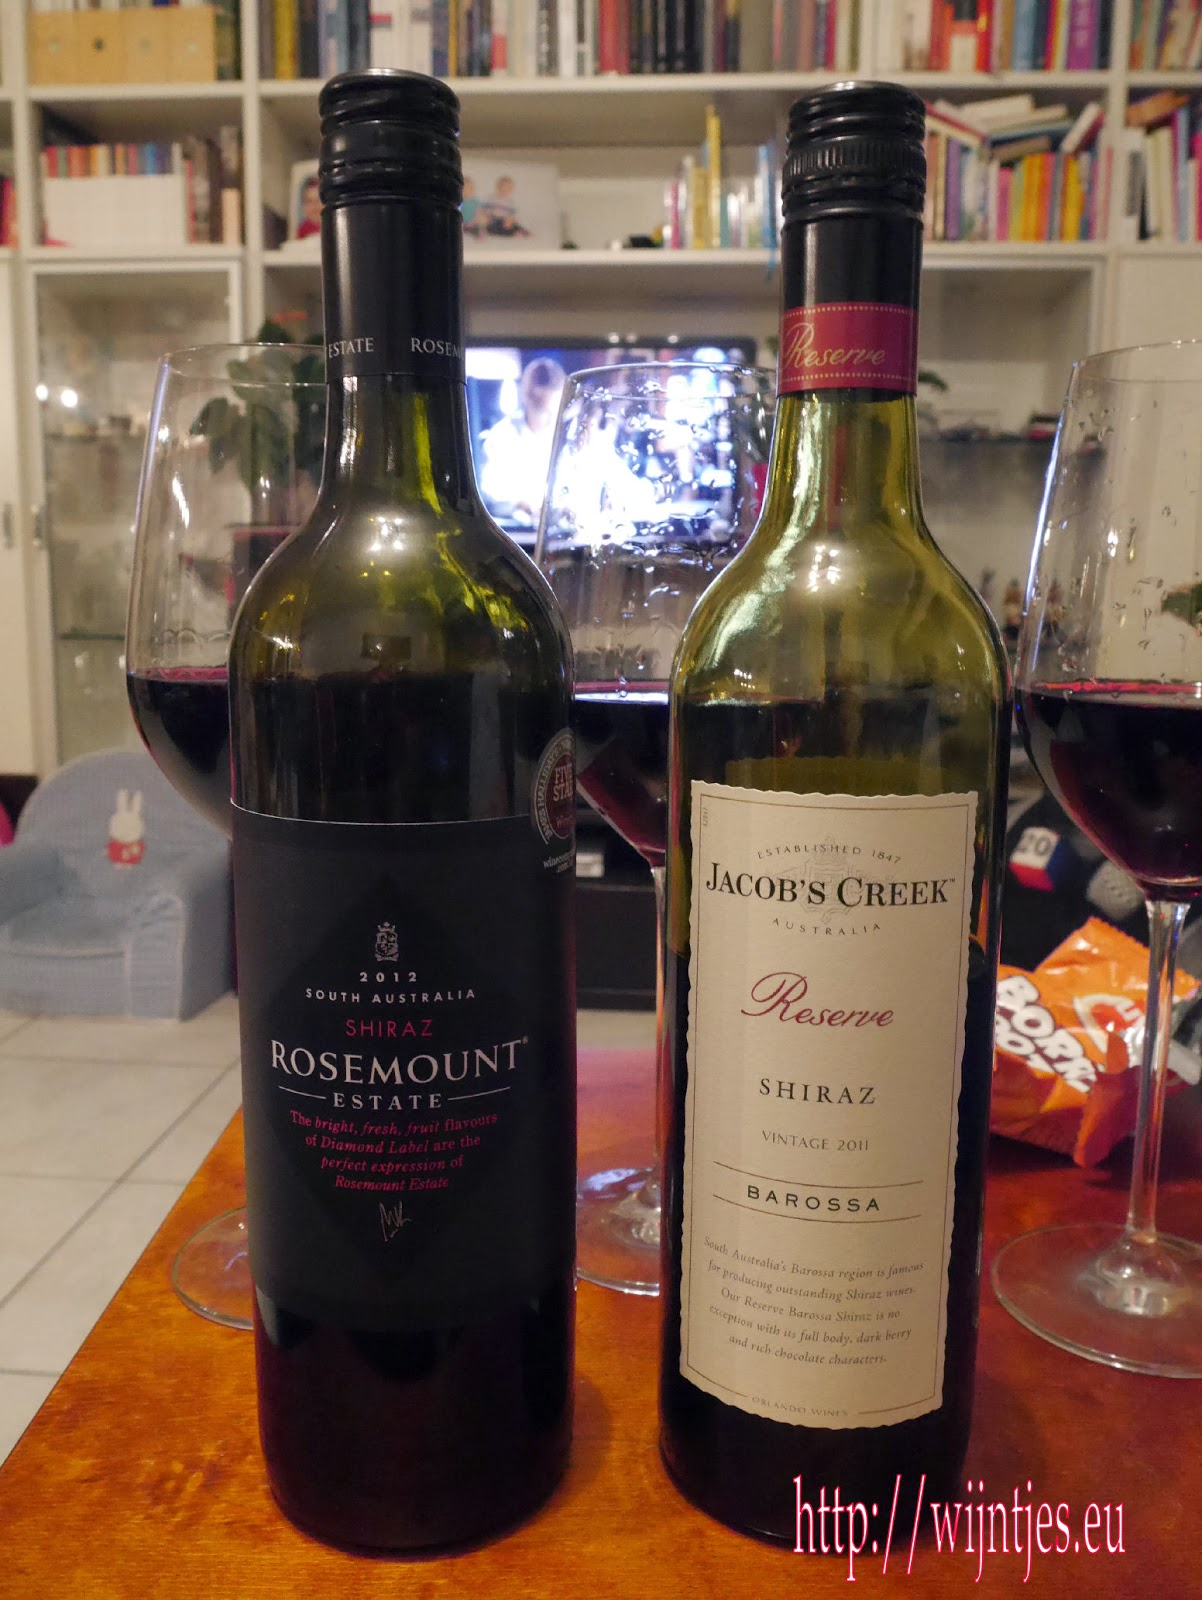 Rosemount South Australia Shiraz 2012, Jacobs Creek Barossa Shiraz 2009